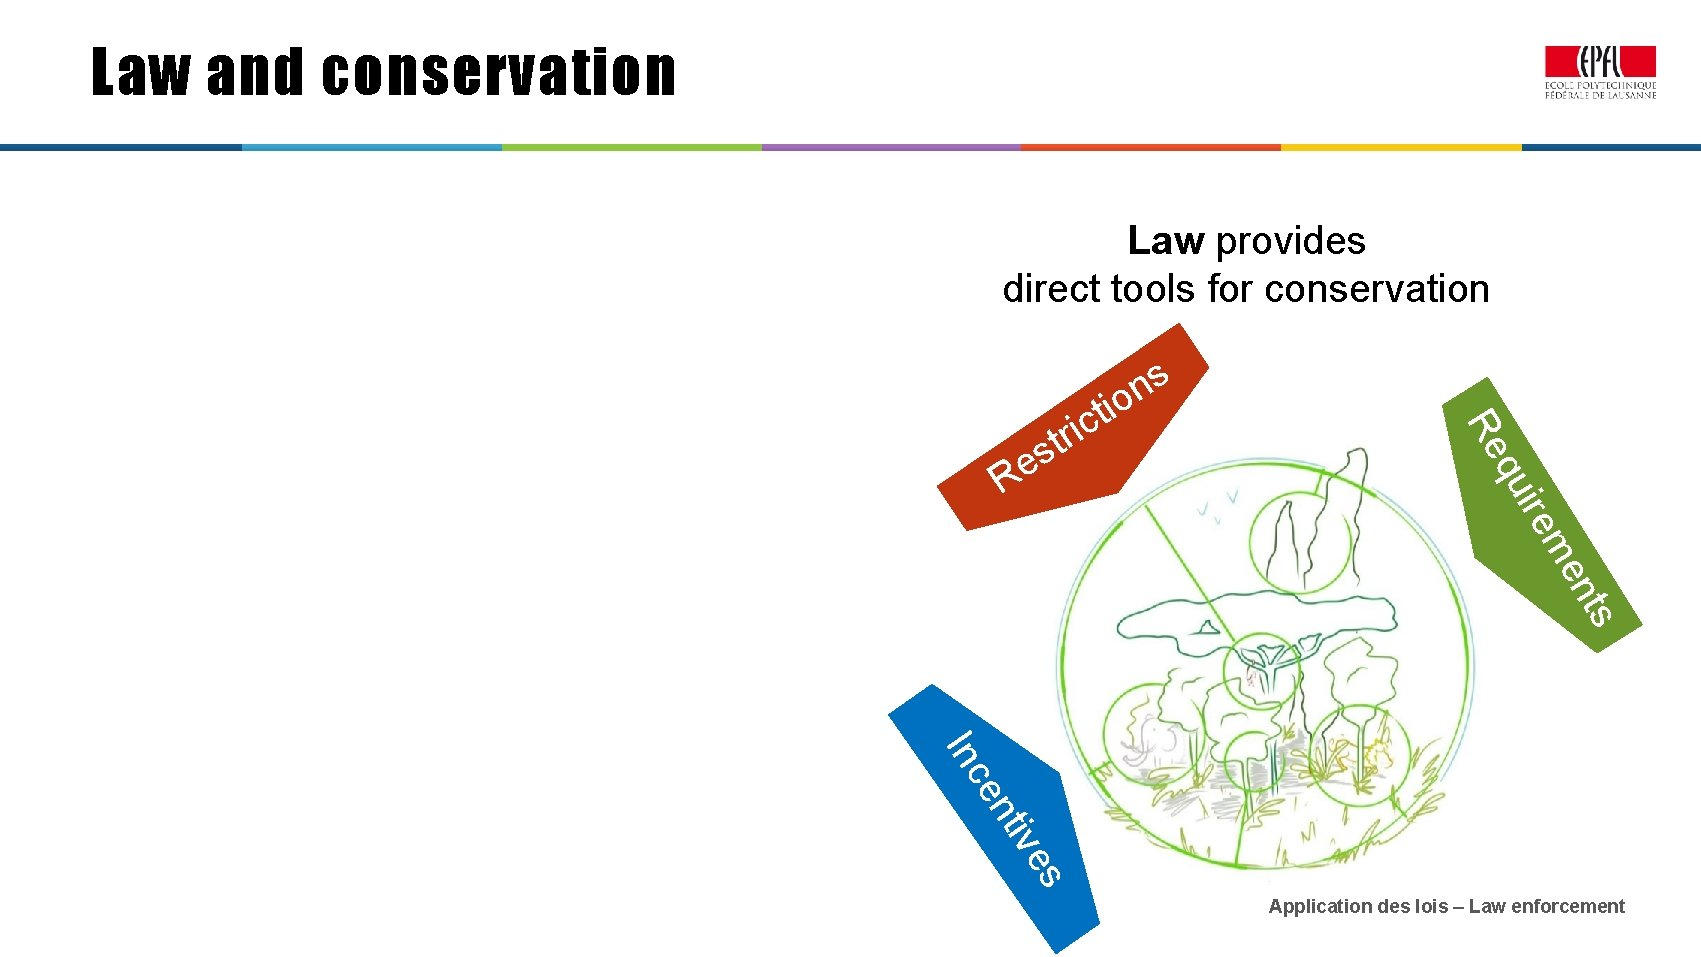 Law and conservation Law provides direct tools for conservation uir s e R t